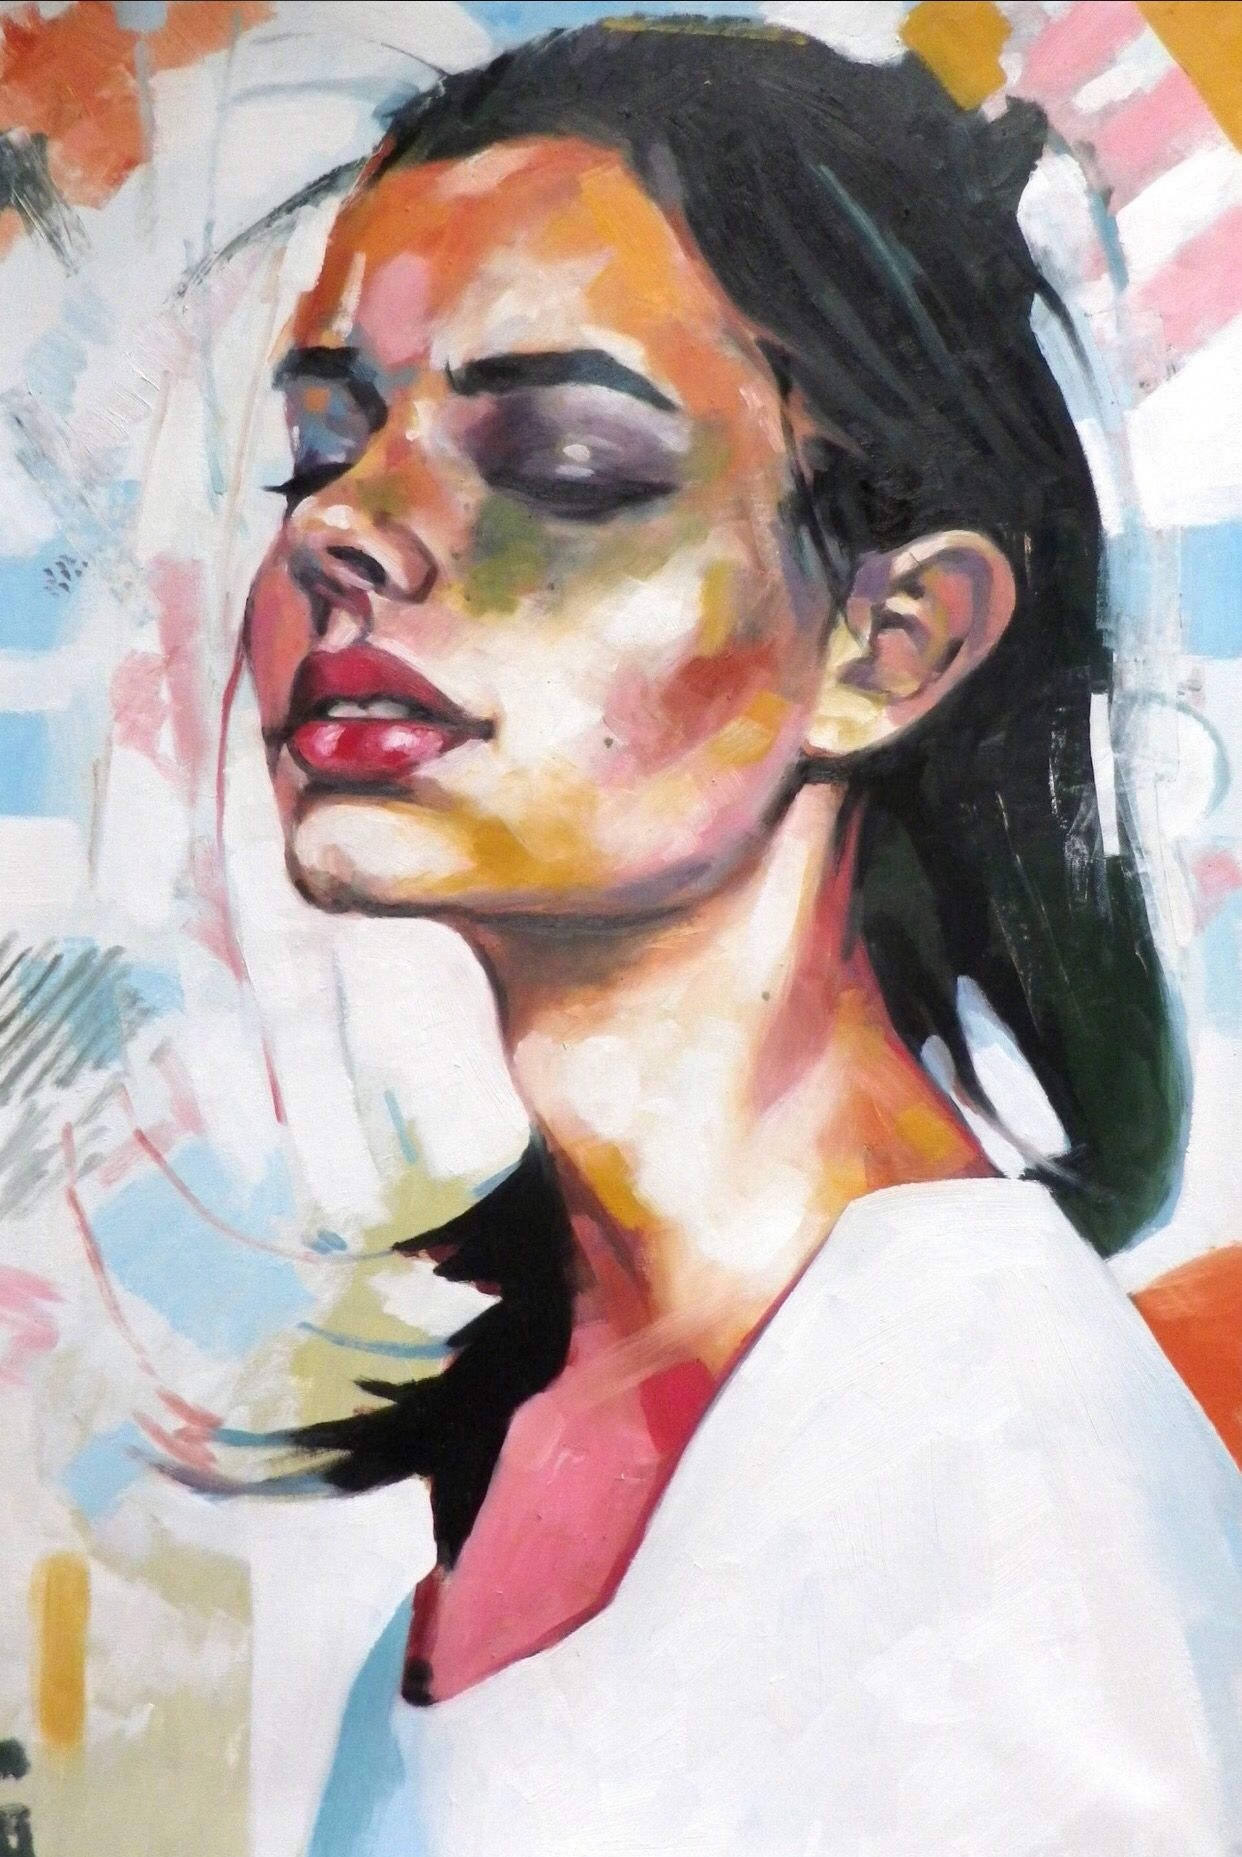 Looking Down Color by Thomas Saliot > view at saatchiart.com ...